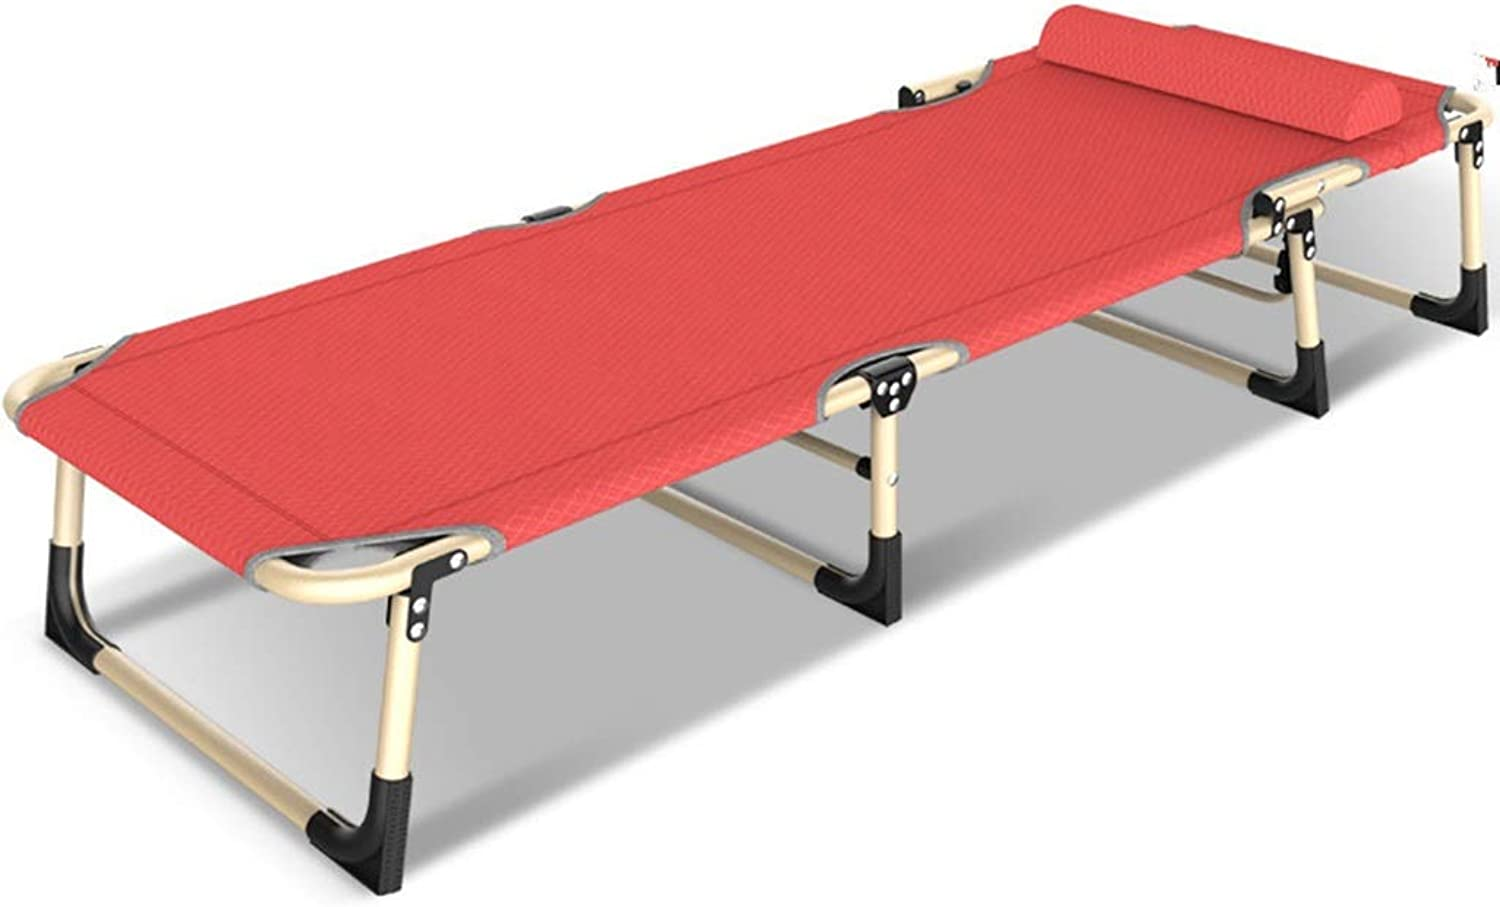 Sun Loungers, Folding beds, Lounge Chairs, Midday nap, Simple Portable Camp Bed, Beach Chair SAN_Y